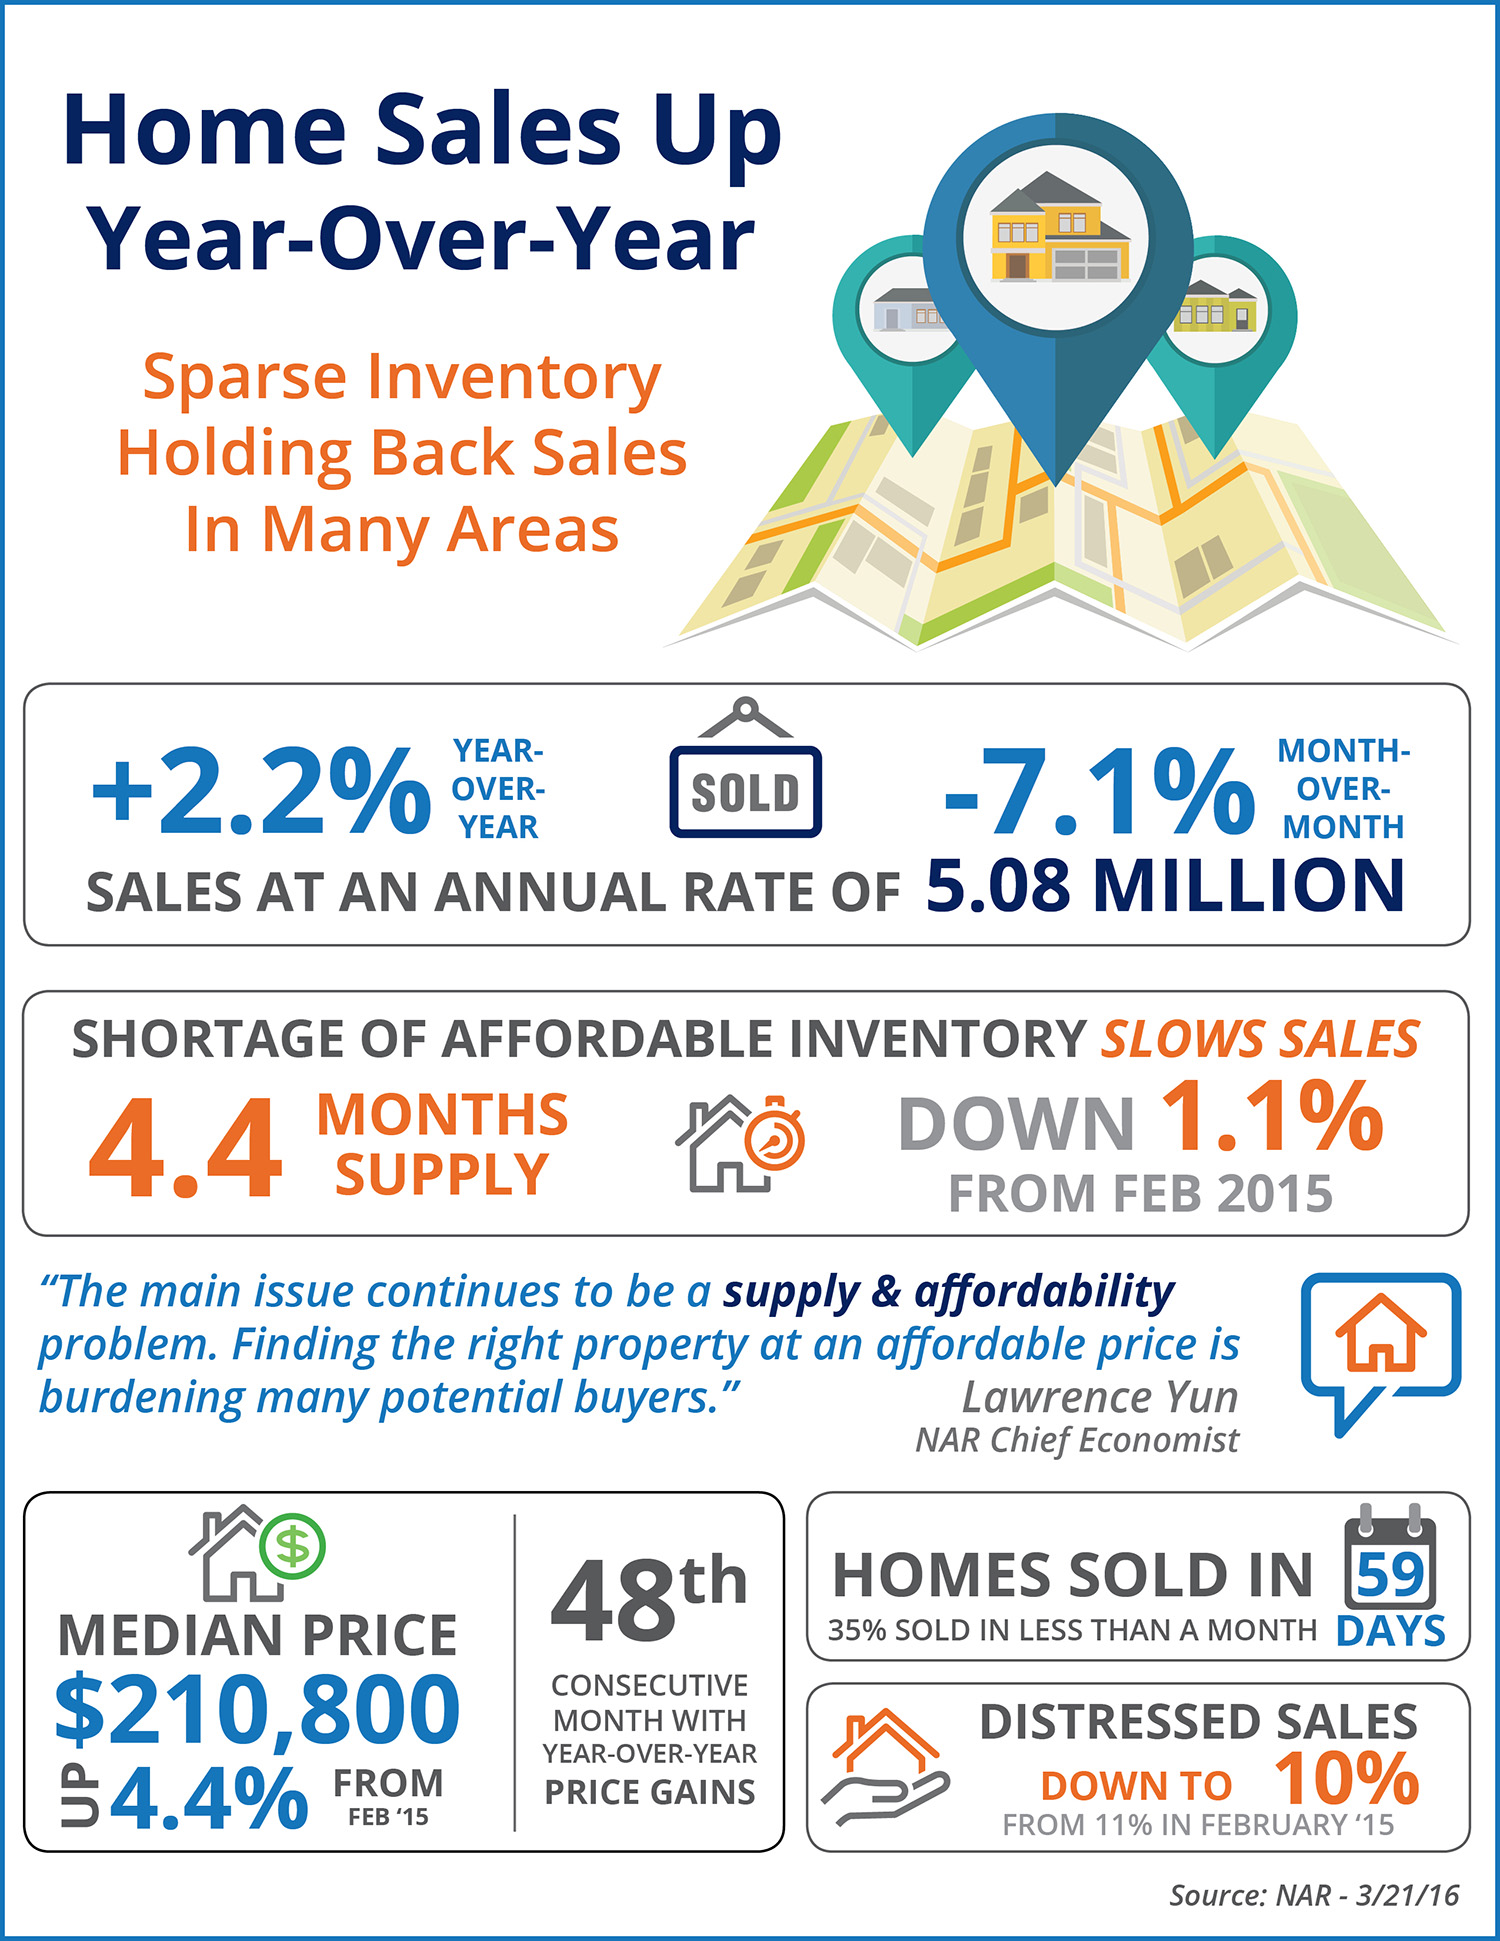 Home Sales Up Year-Over-Year | Simplifying The Market